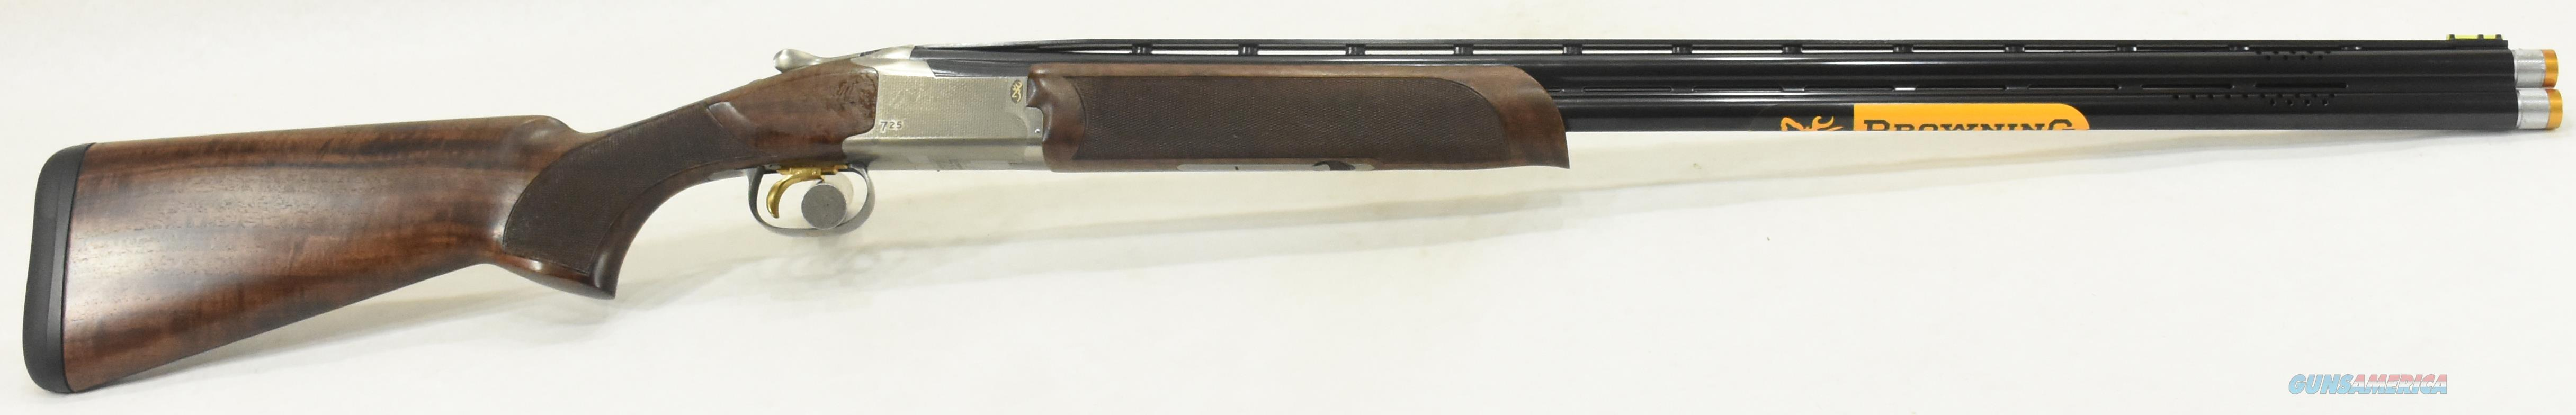 Citori 725 Sporting Walnut 20Ga 30-3In  0135316010  Guns > Shotguns > Browning Shotguns > Over Unders > Citori > Trap/Skeet